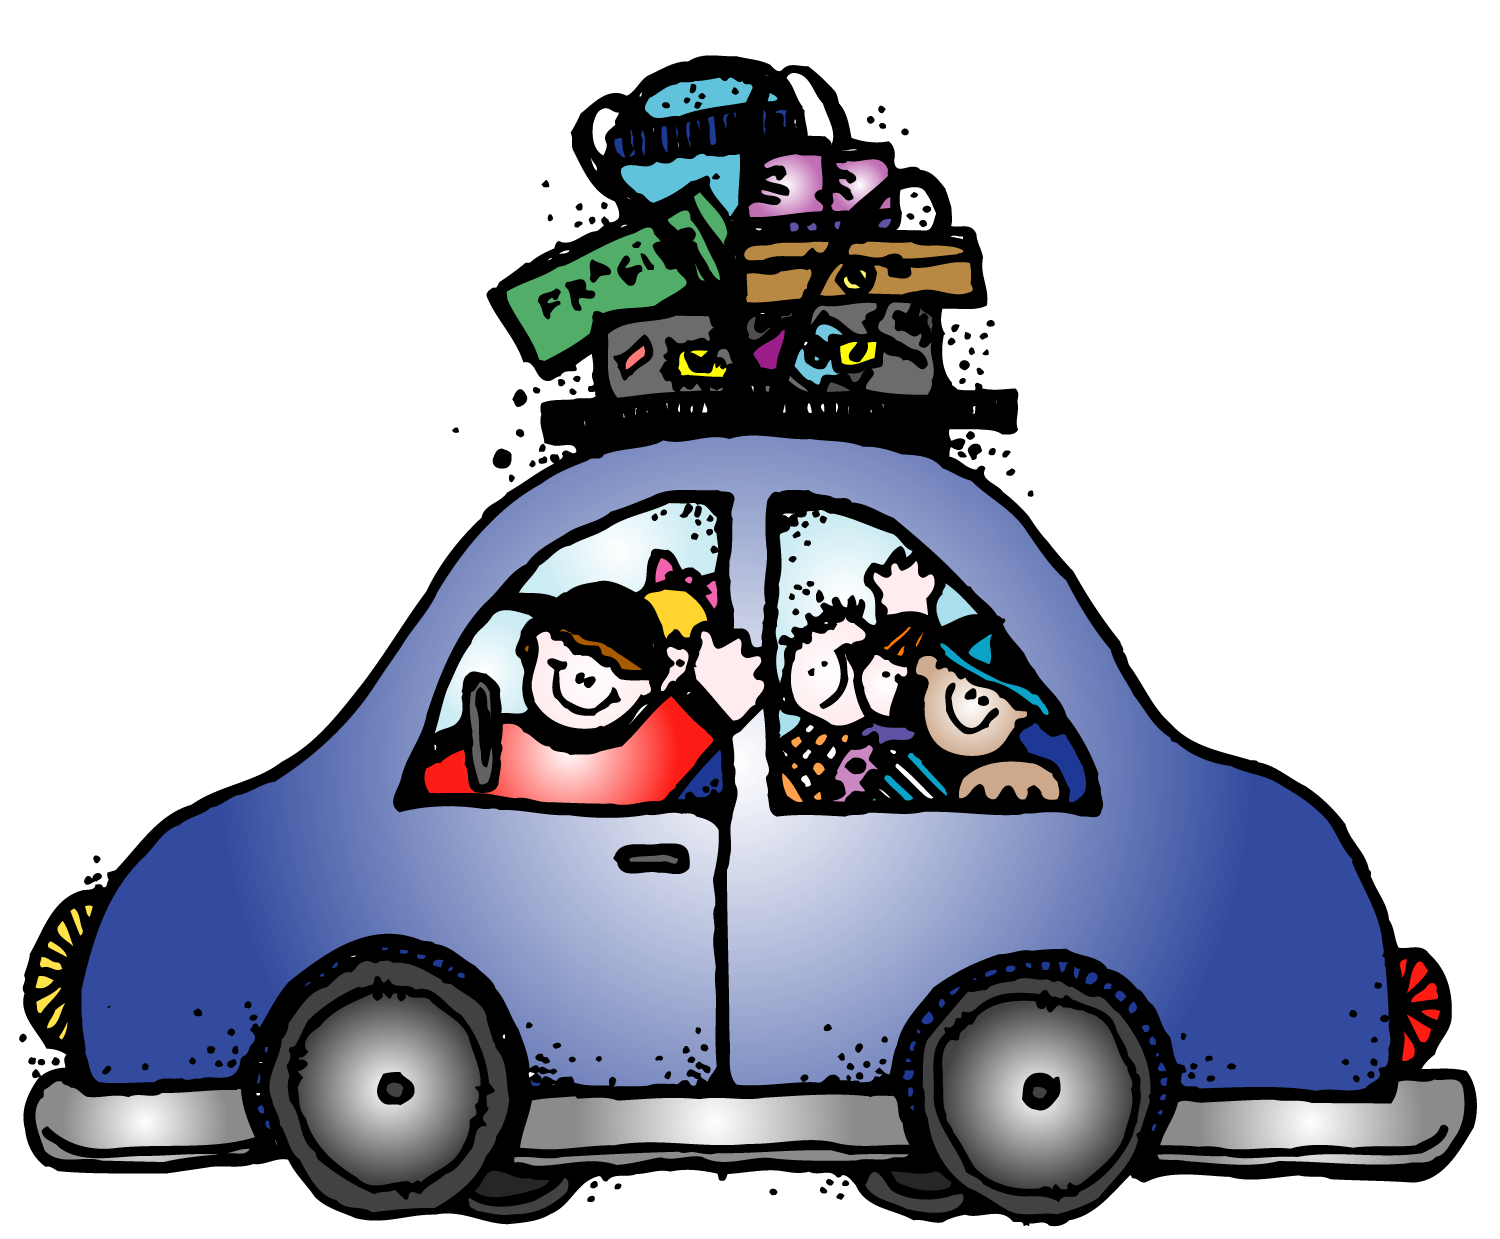 Car trip clipart clipart royalty free download Car trip clipart clipart royalty free download